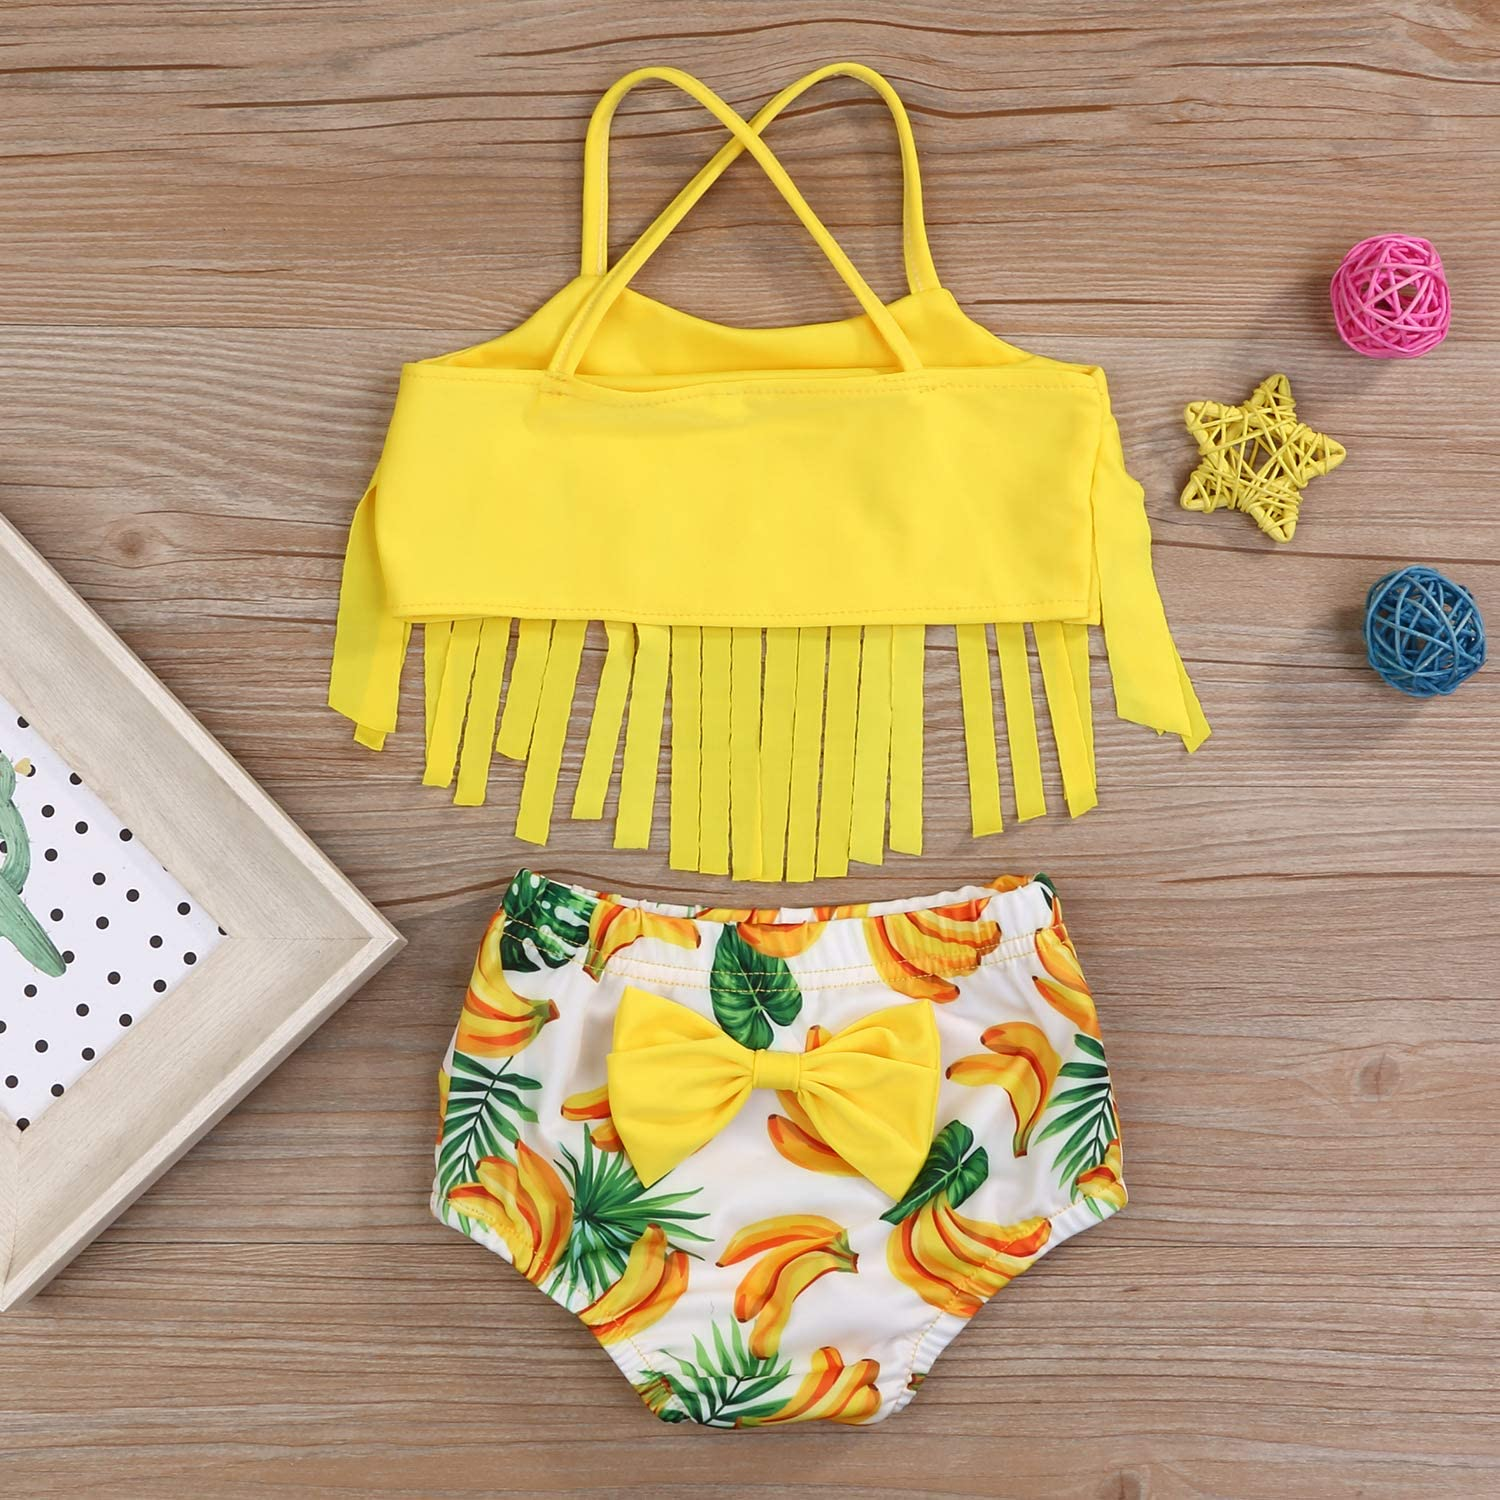 YOUNGER TREE Toddler Baby Girl Swimsuit Dinosaur Tassel Sling Bikini Top+Shorts Bathing Suits Beachwear Summer Clothes